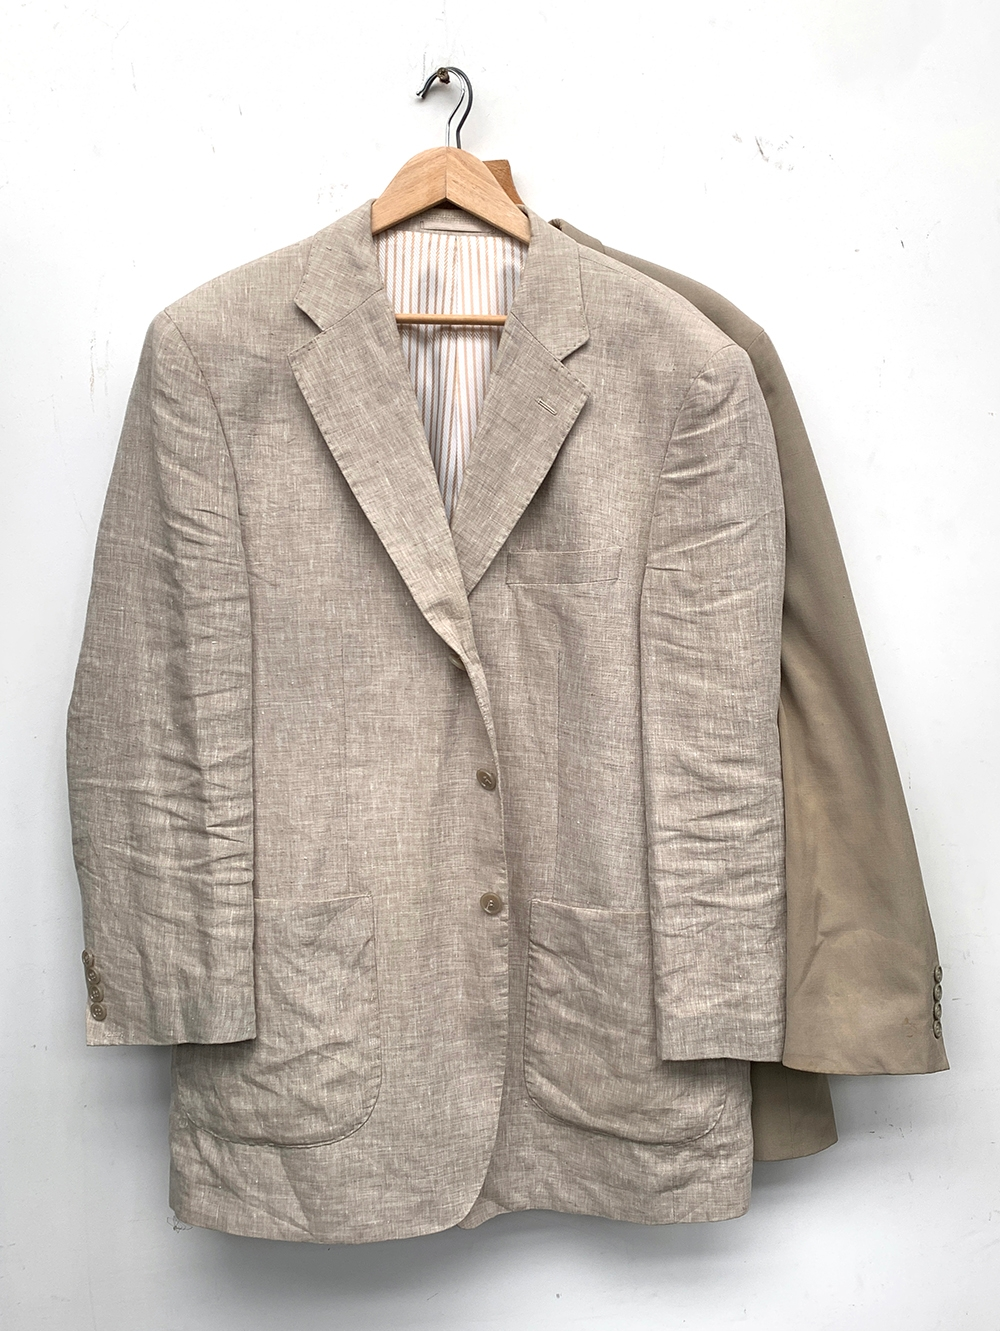 """Two linen jackets, approx. 44"""" chest - Image 2 of 2"""